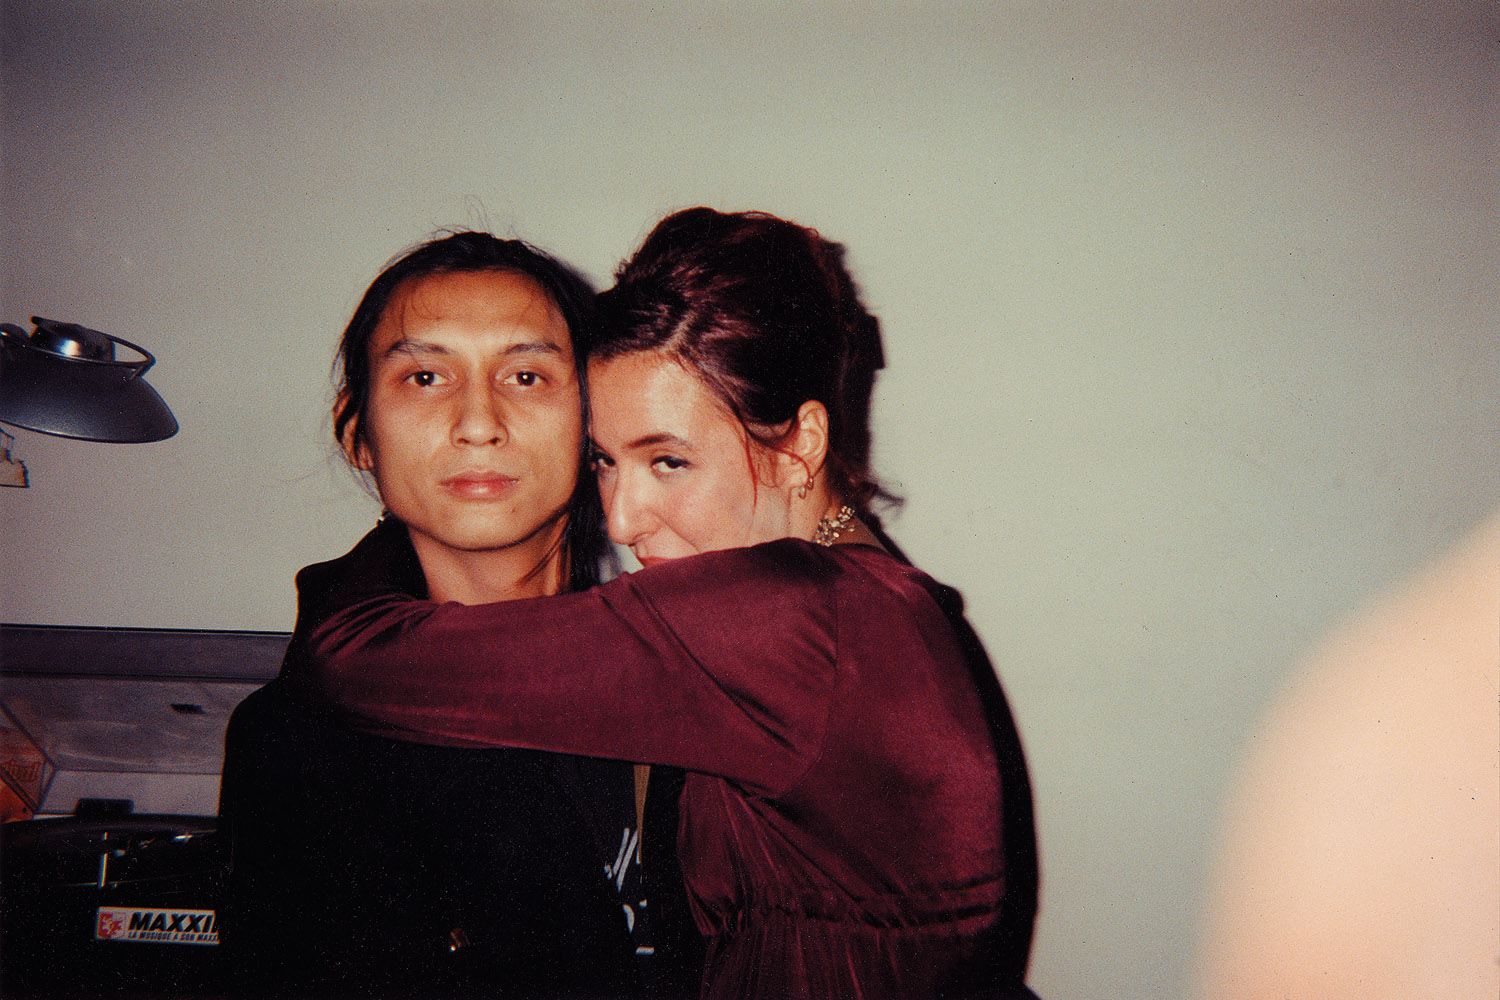 This is my good friend Sitthisack Viraphong from Laos (left) and me at my 24th birthday. Sitthi introduced me to Nirvana at about this time. I was actually full-on in my house music/rave period. We are high as kites in this photo.